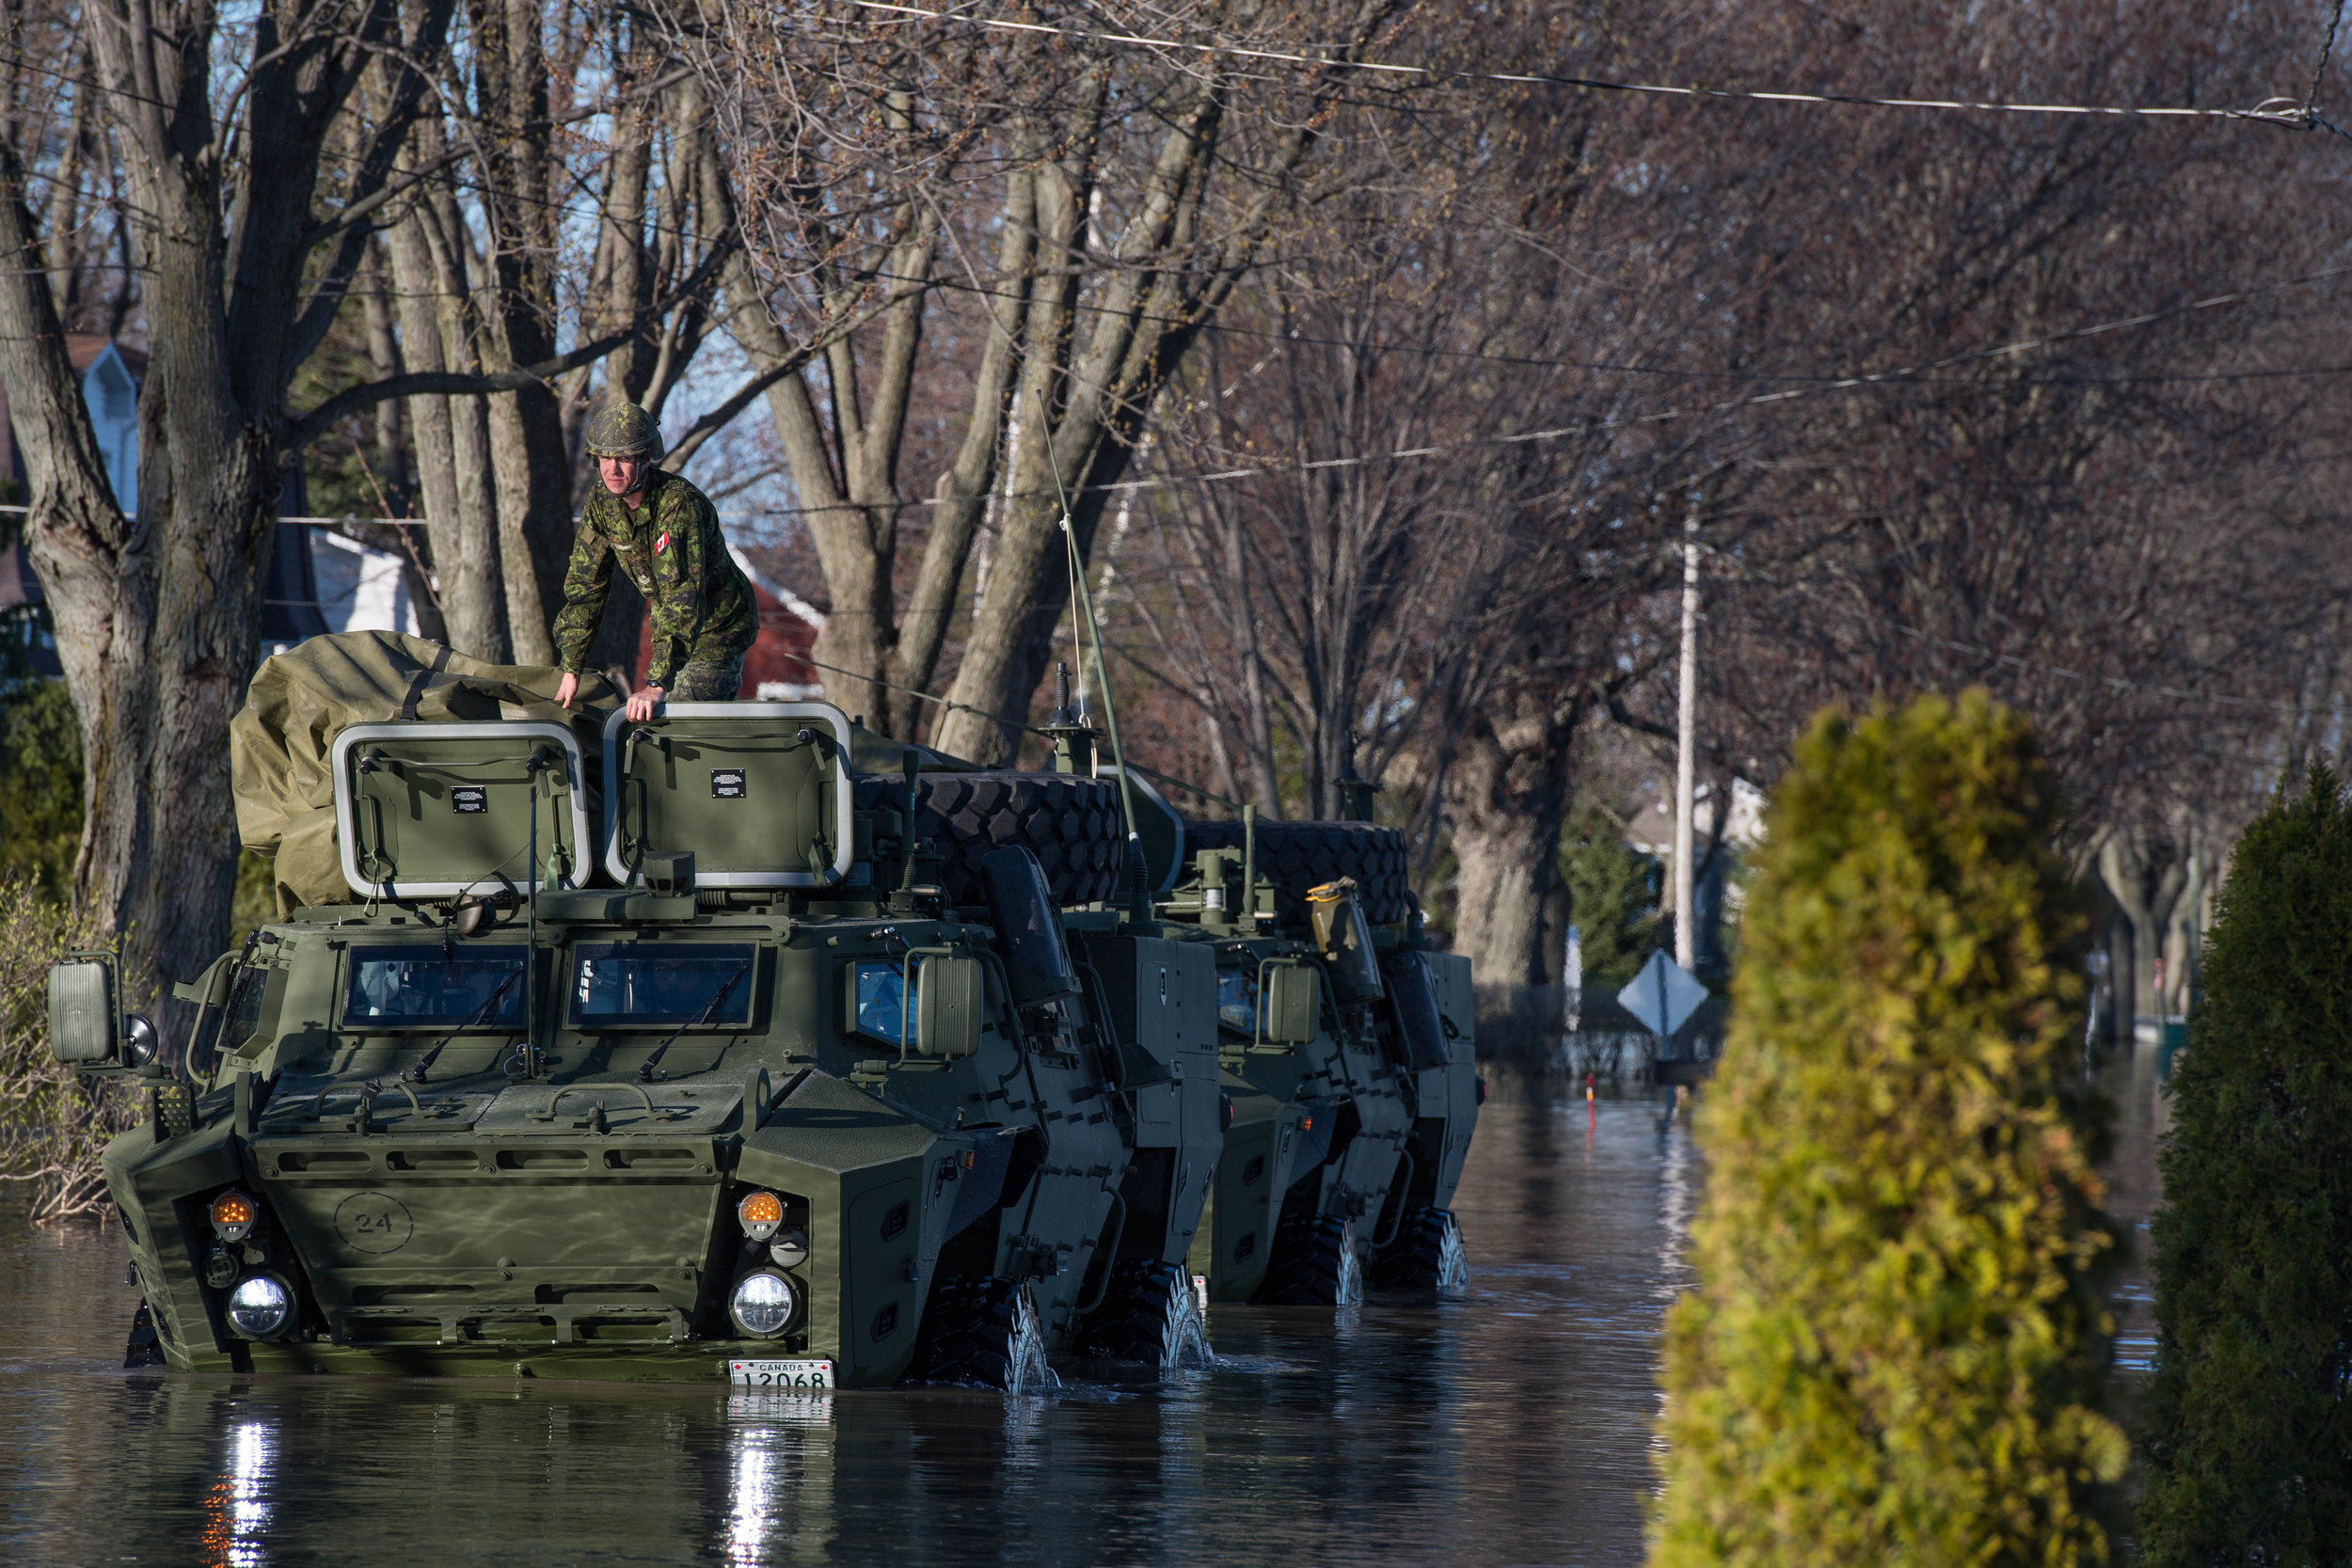 Tactical Armoured Patrol Vehicles patrol flooded streets in Saint-Barthélemy, Québec during Operation LENTUS, May 12, 2017. The TAPV, which replaces the RG-31 Nyala, is now being delivered to the Canadian Army. Under the Defence Acquisition Guide (DAG), the Army will also receive simulators for the LAV 6.0, Leopard 2 main battle tank and TAPV. (sgt marc-andré gaudreault, valcartier imaging services)